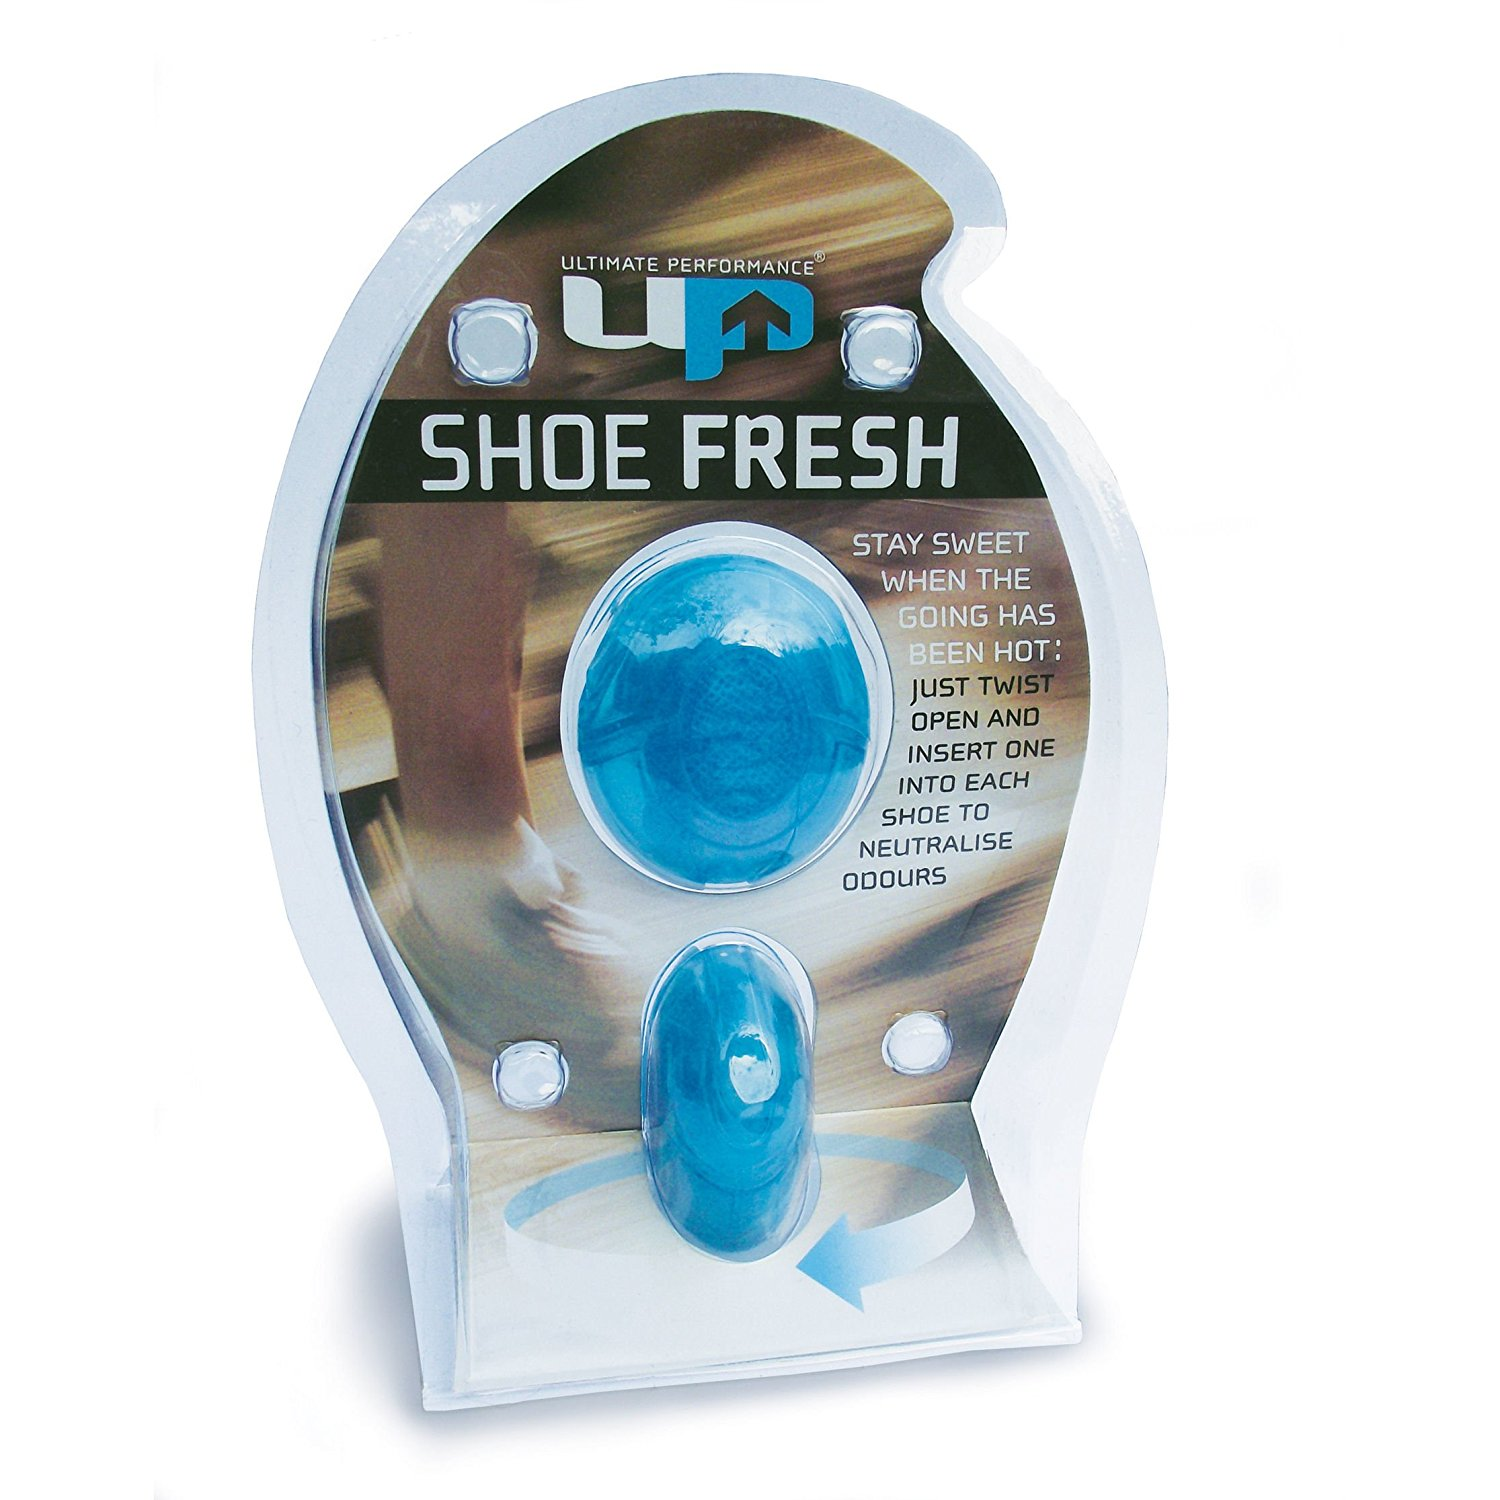 ULTIMATE PERFORMANCE Дезодорант для обуви Shoe Fresh